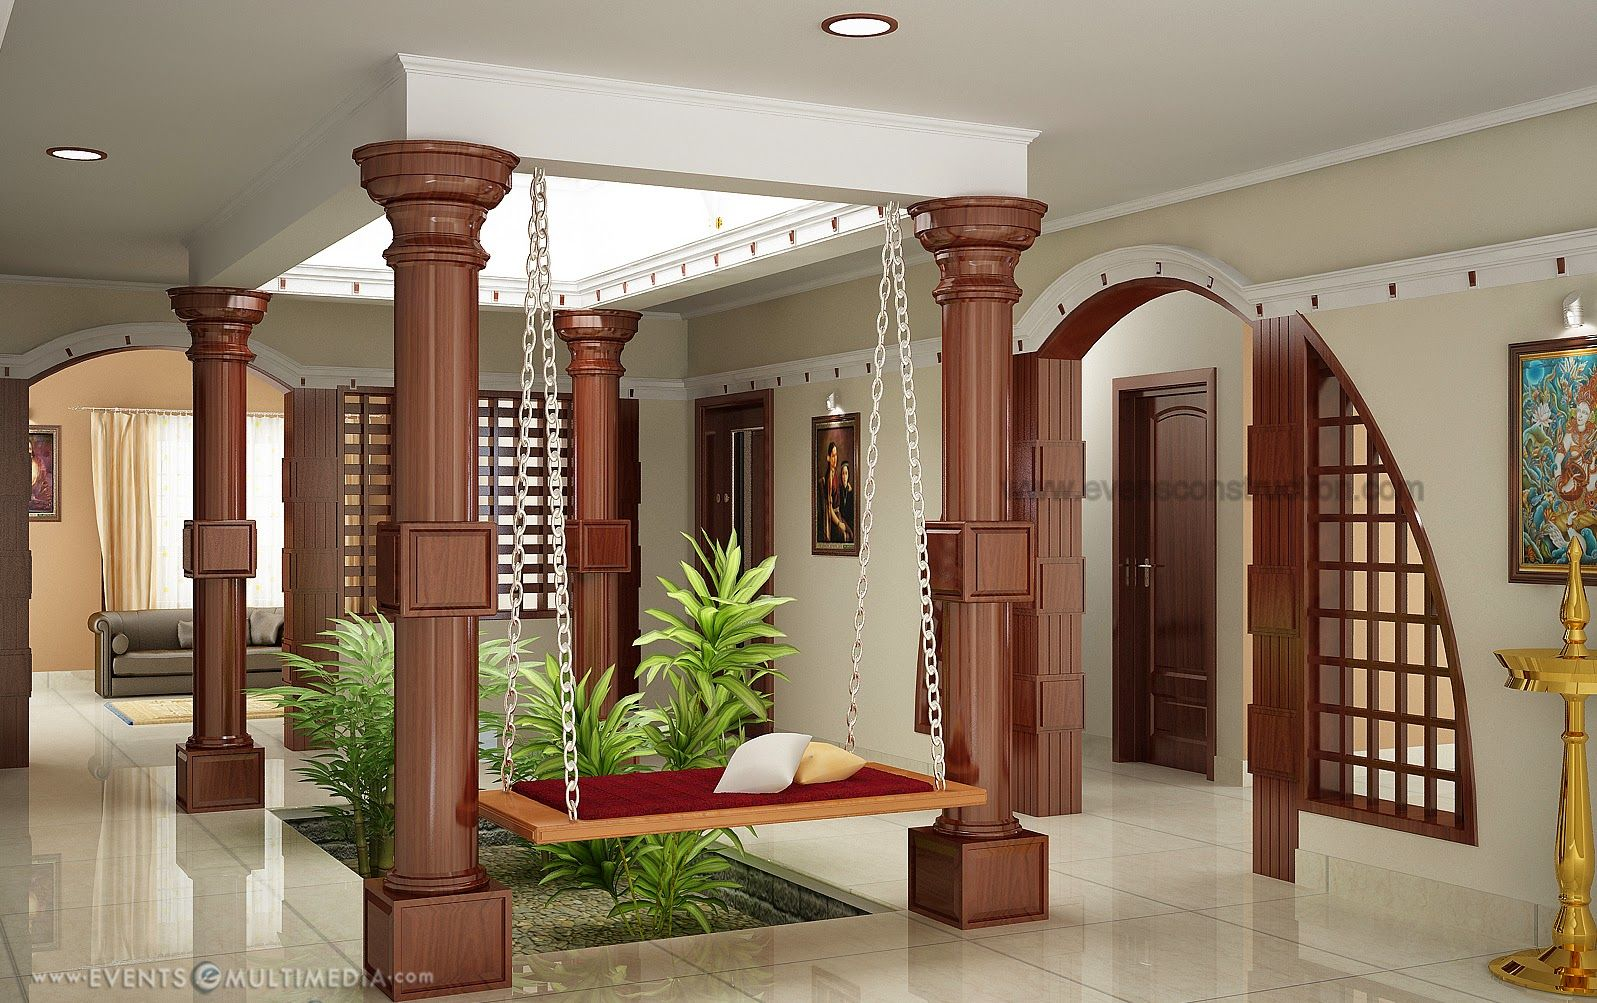 Home Design Inside interior design kerala - google search | inside and outside